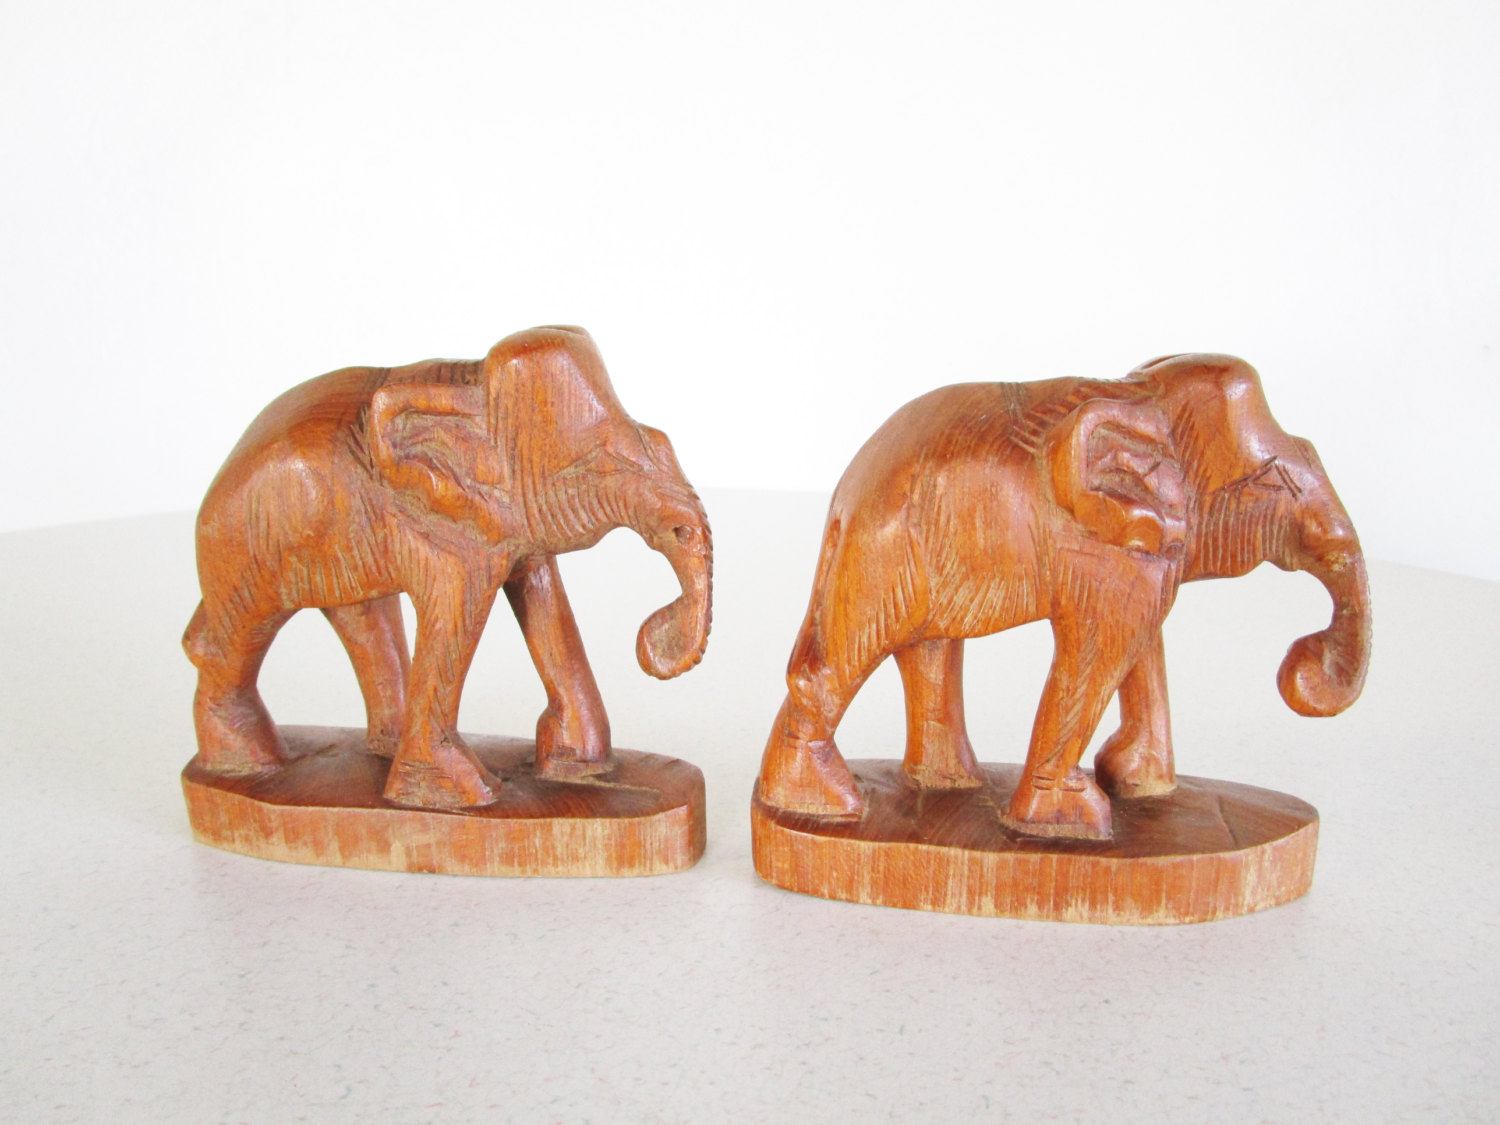 vintage carved wooden elephant figurines